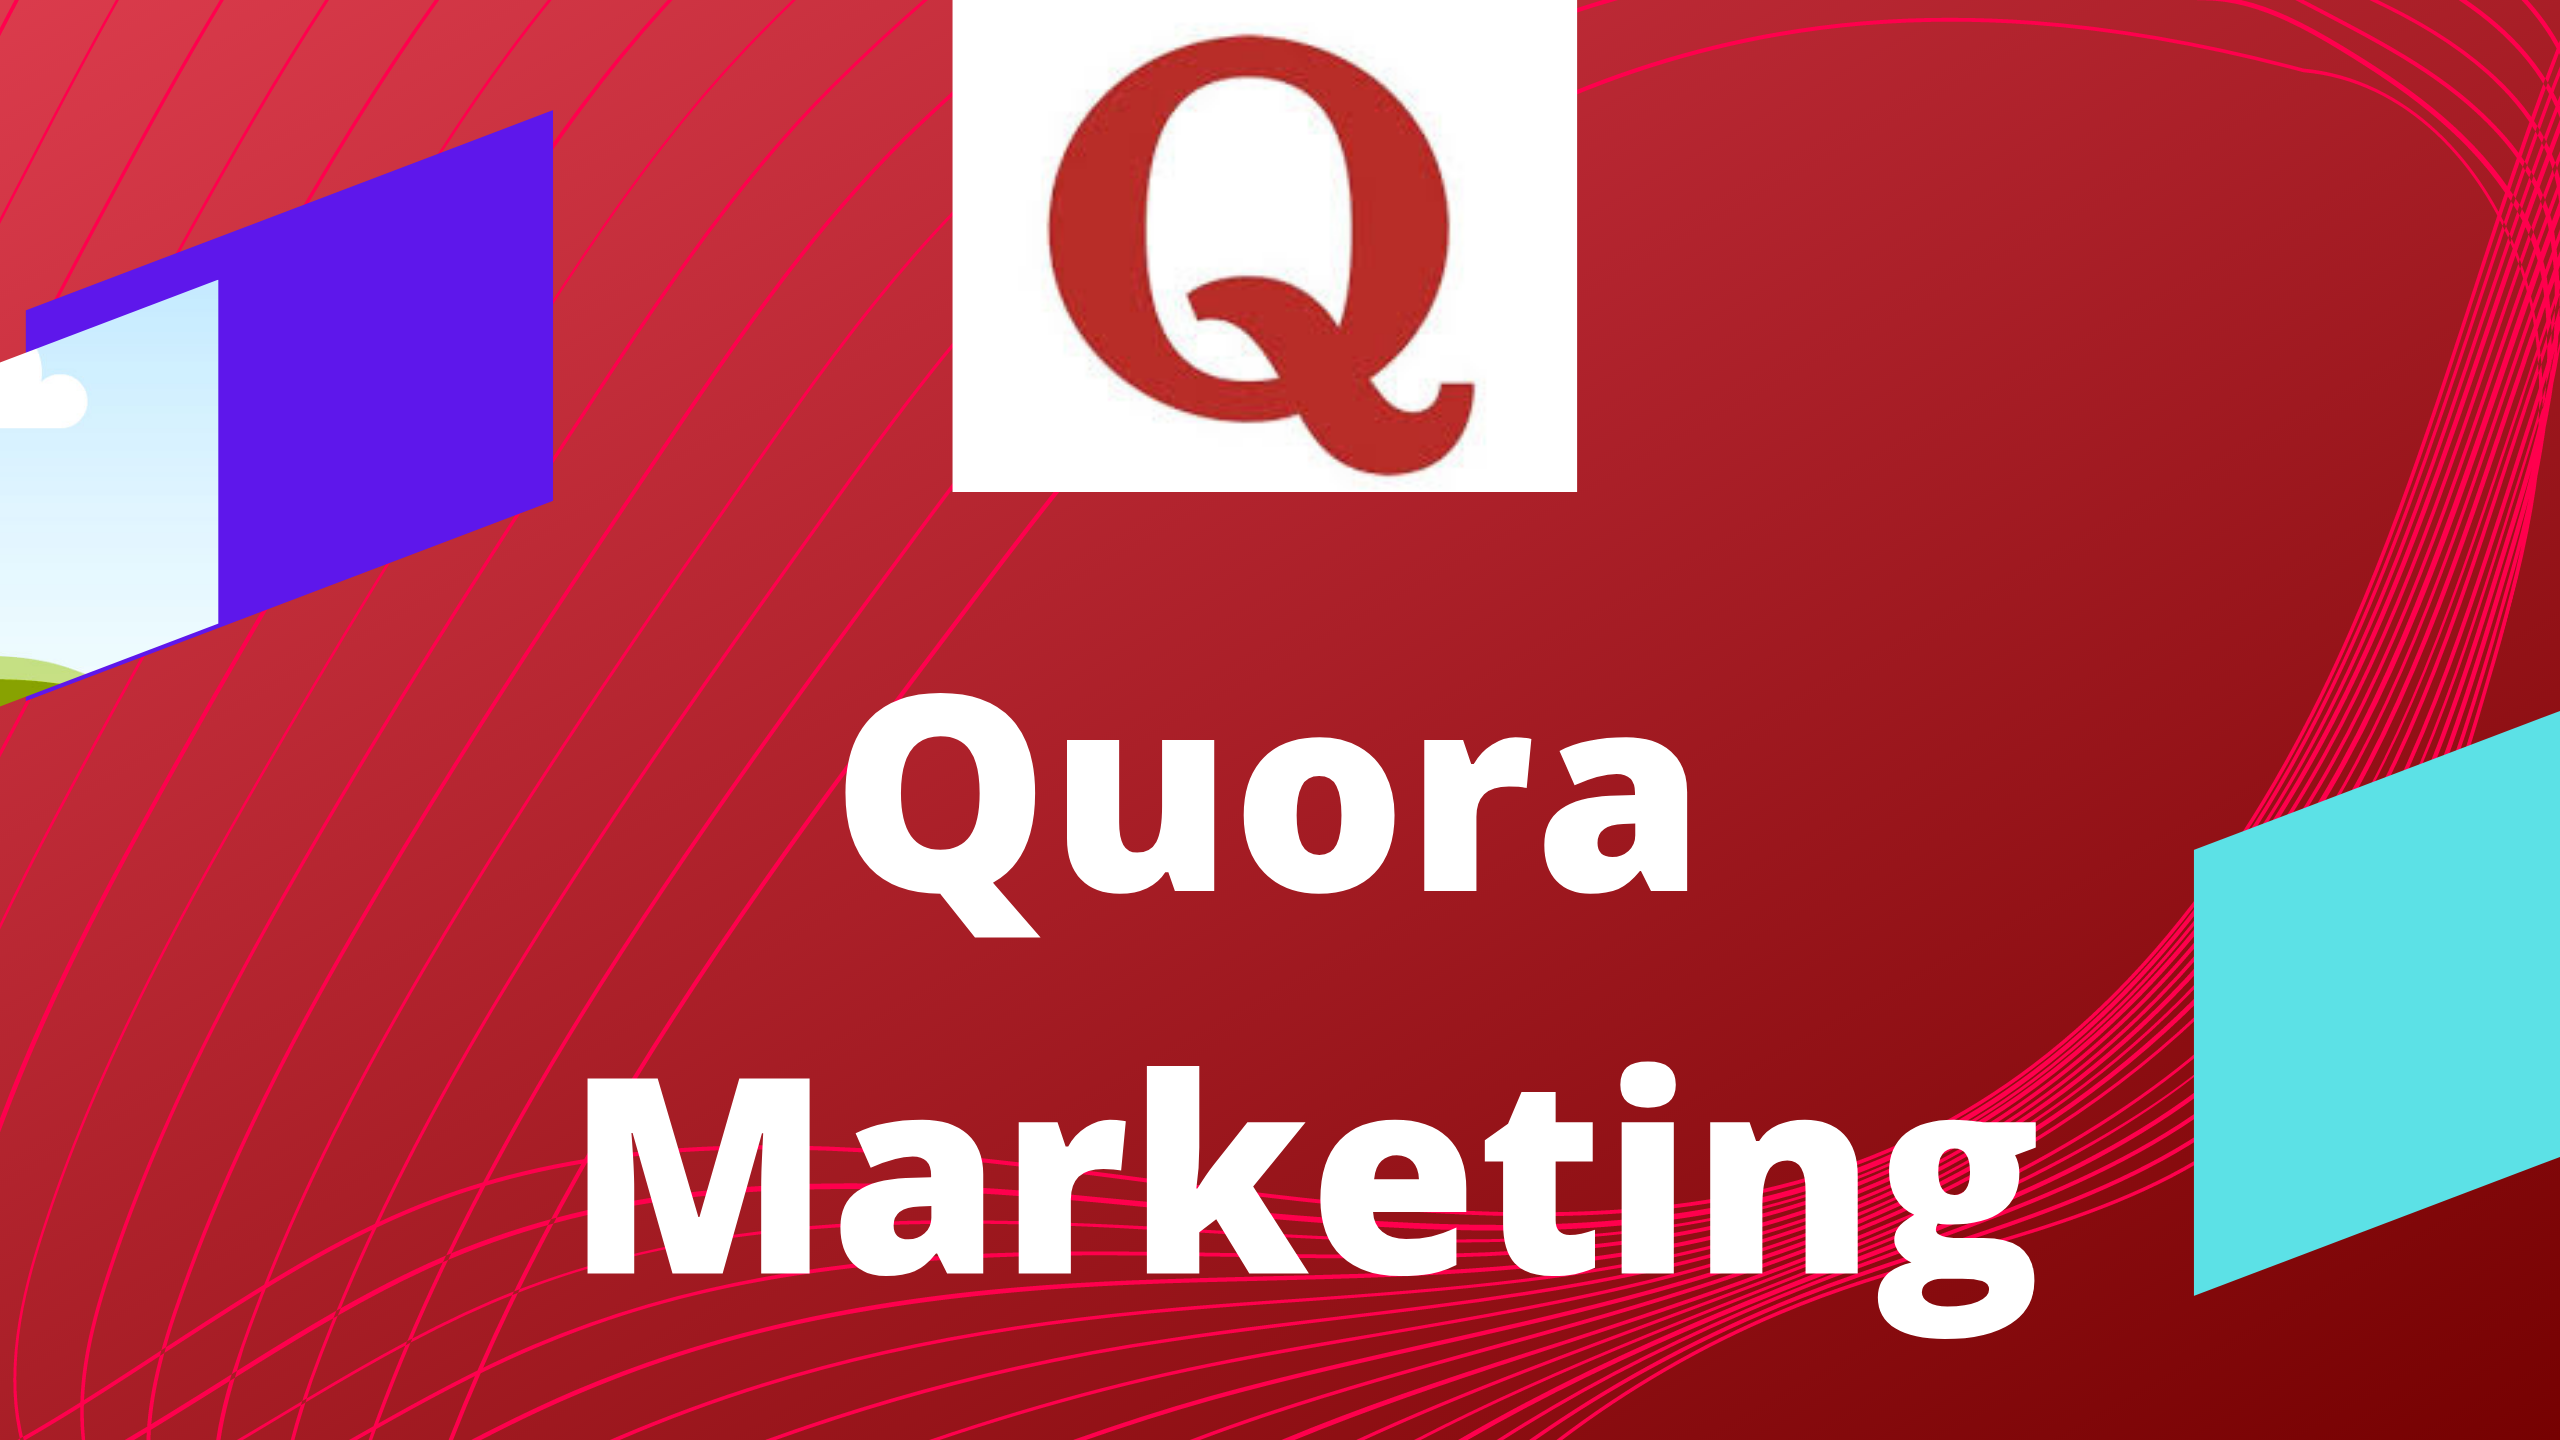 Advance your site 5 Quora answer with Backlink.